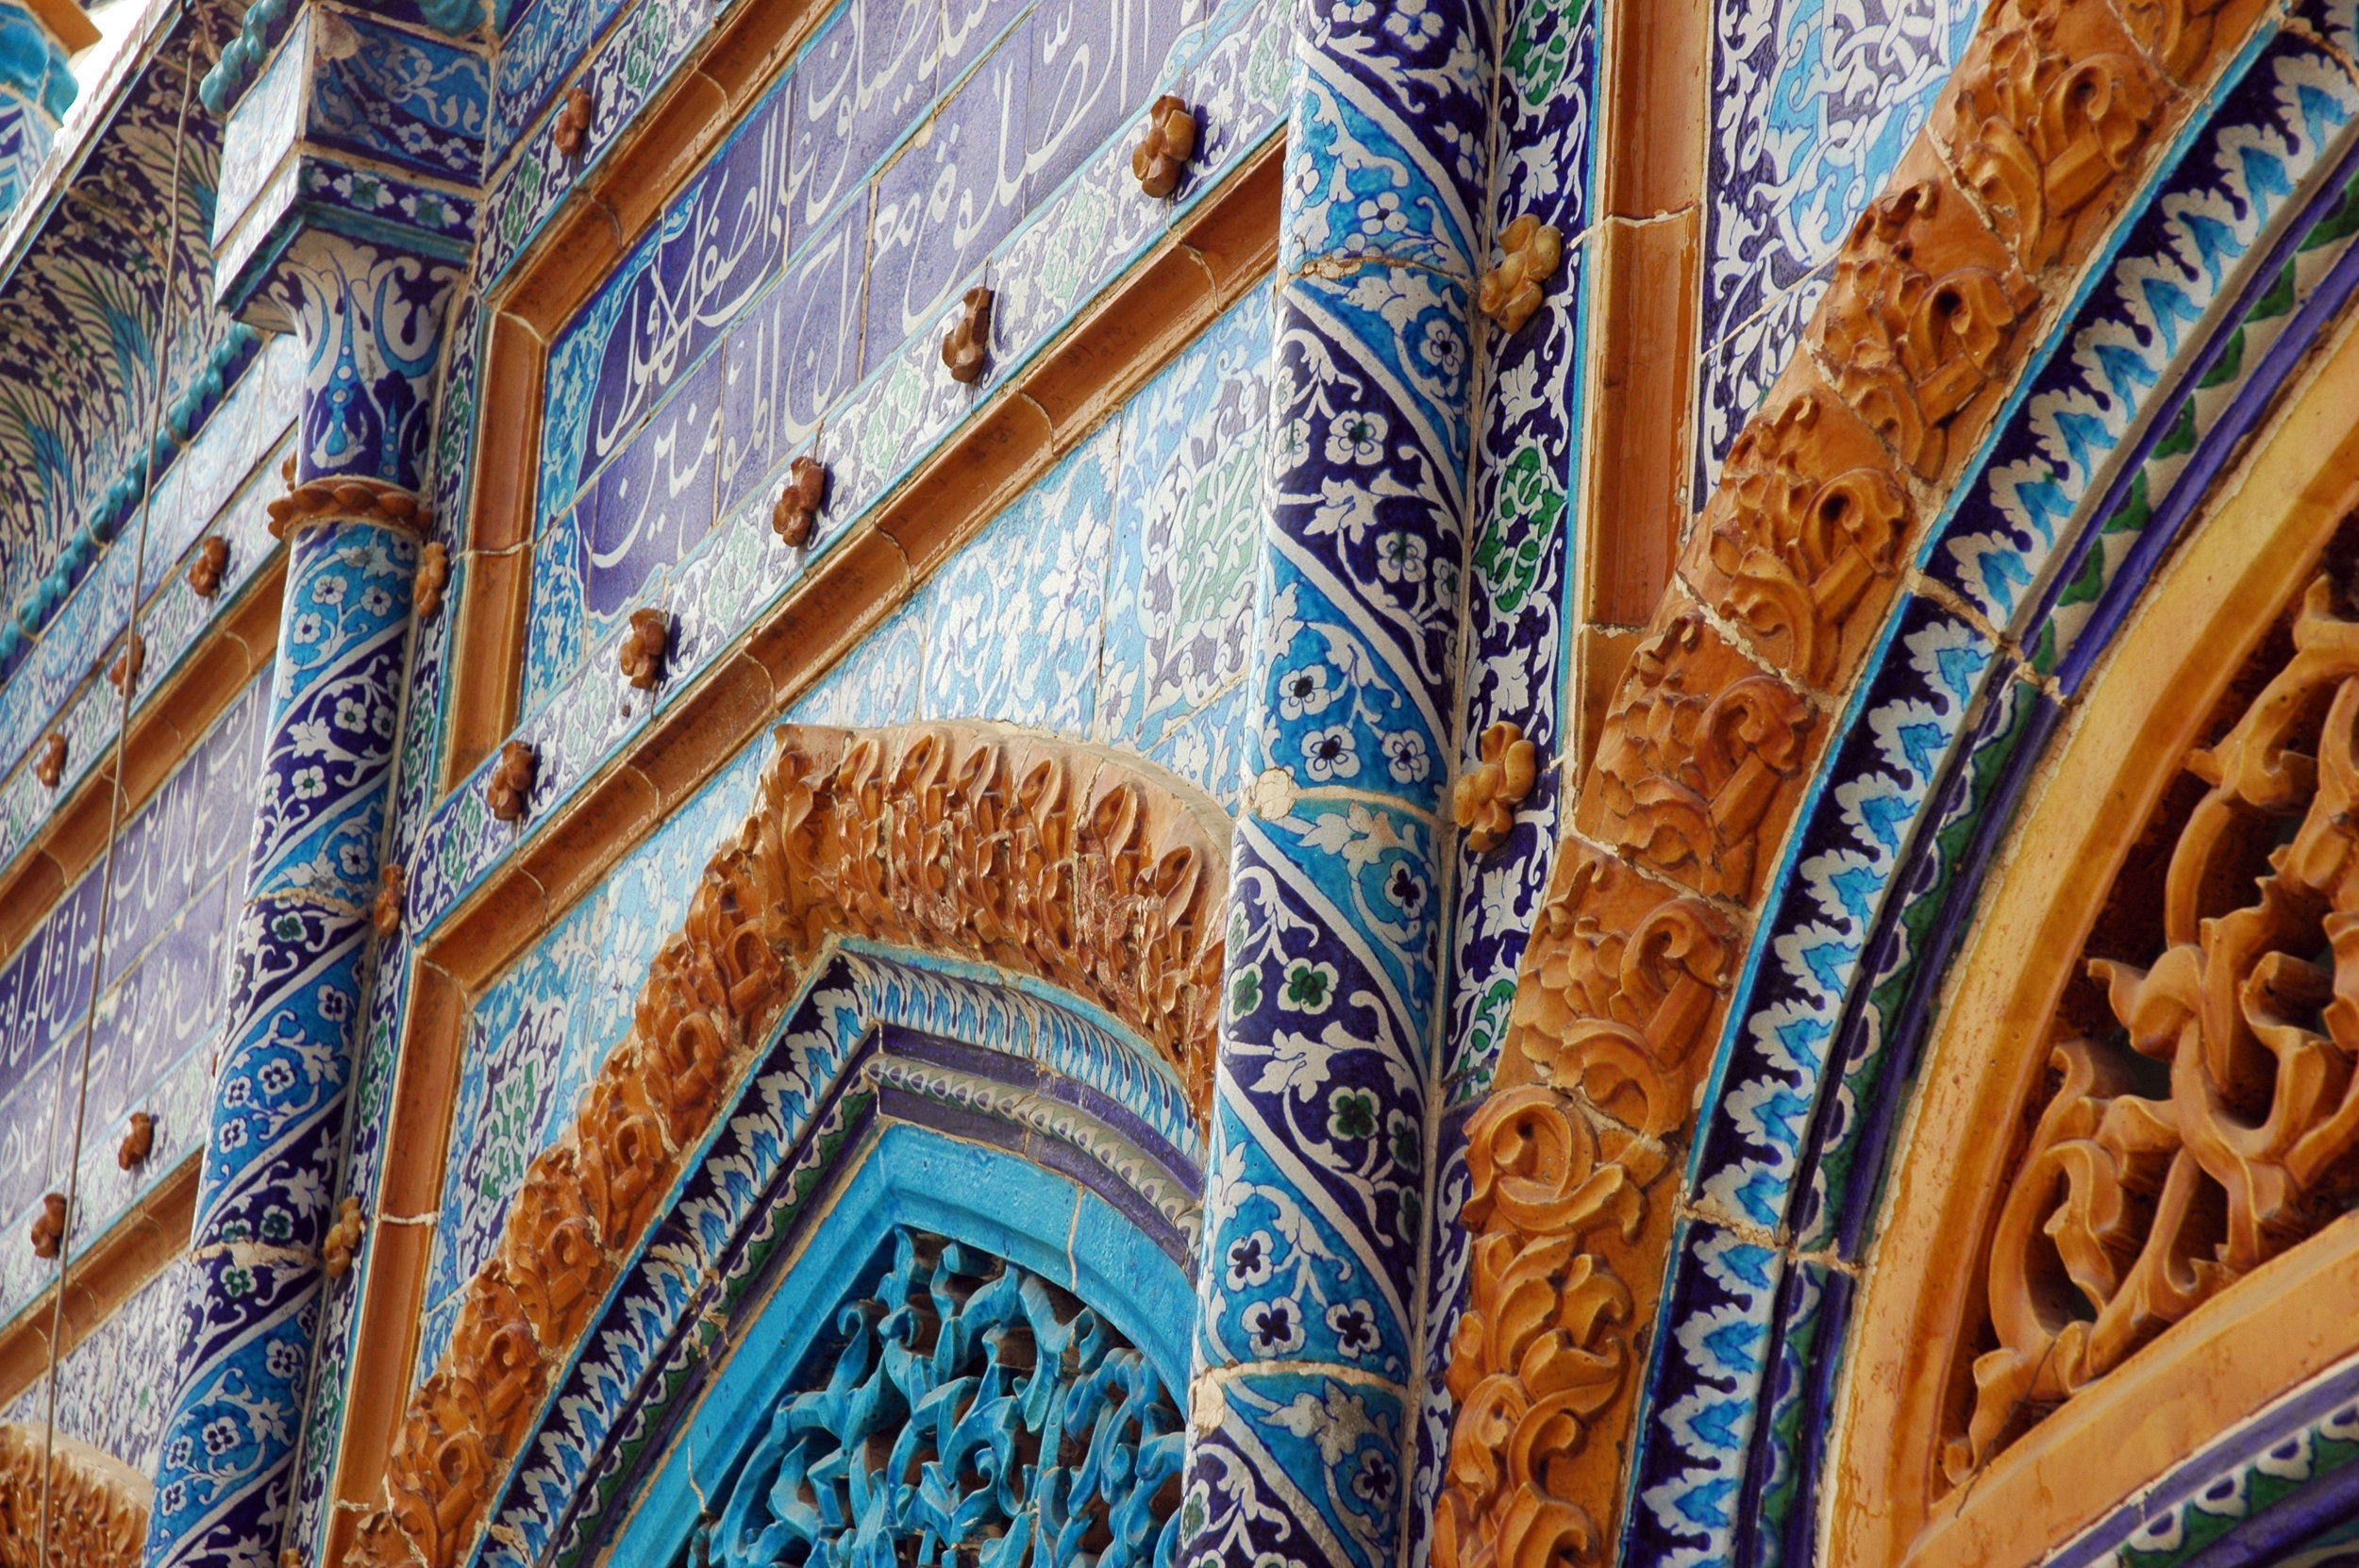 Mosque ceramic cladded by 6th generation potters in Interior Sindh, outside Karachi